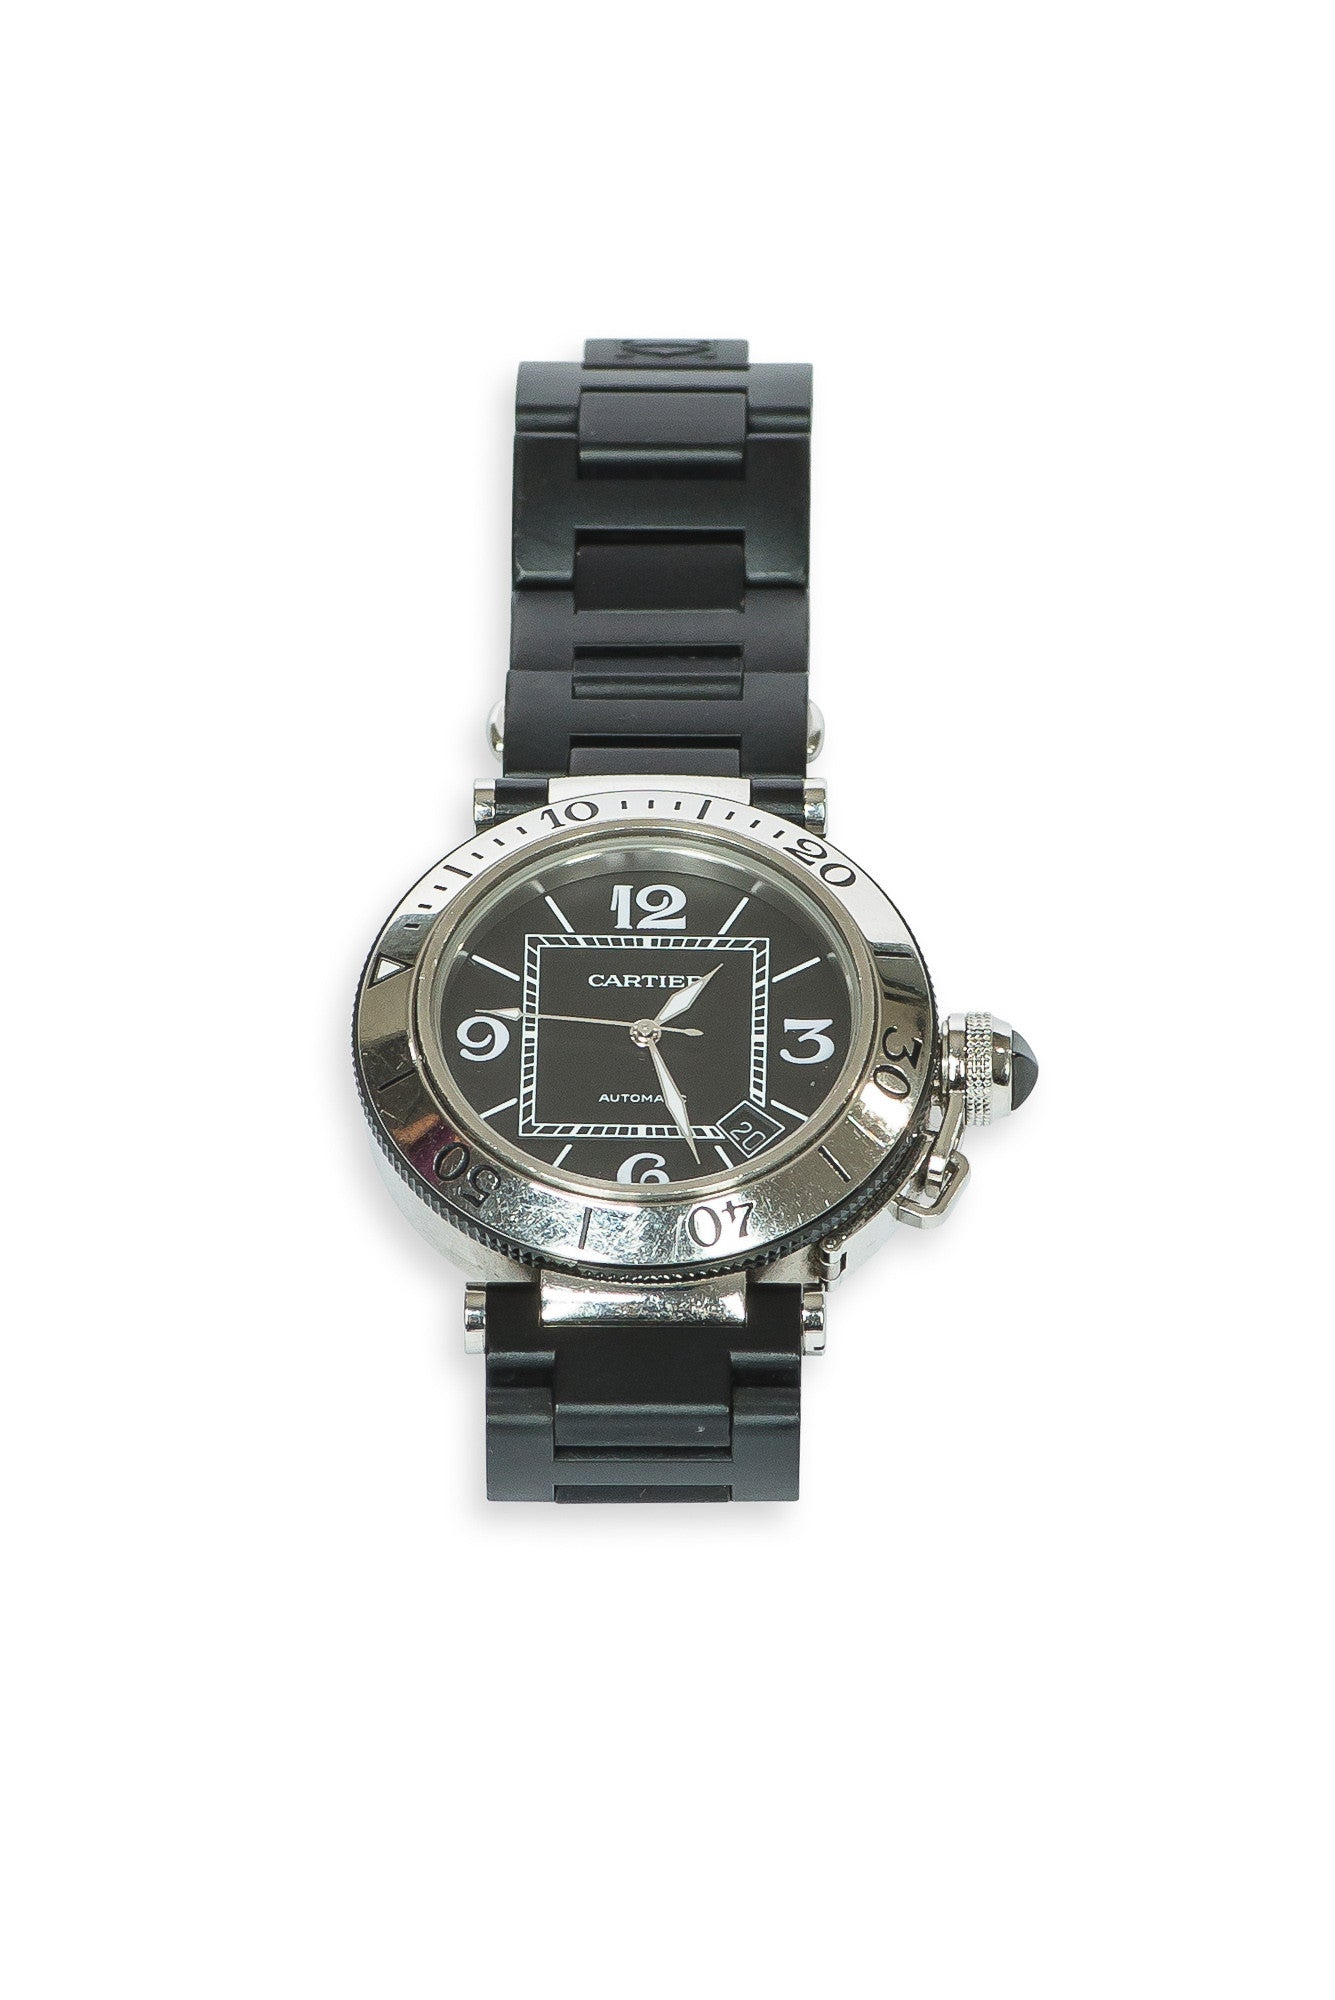 CARTIER PASHA SEATIMER RUBBER STRAP STEEL WATCH